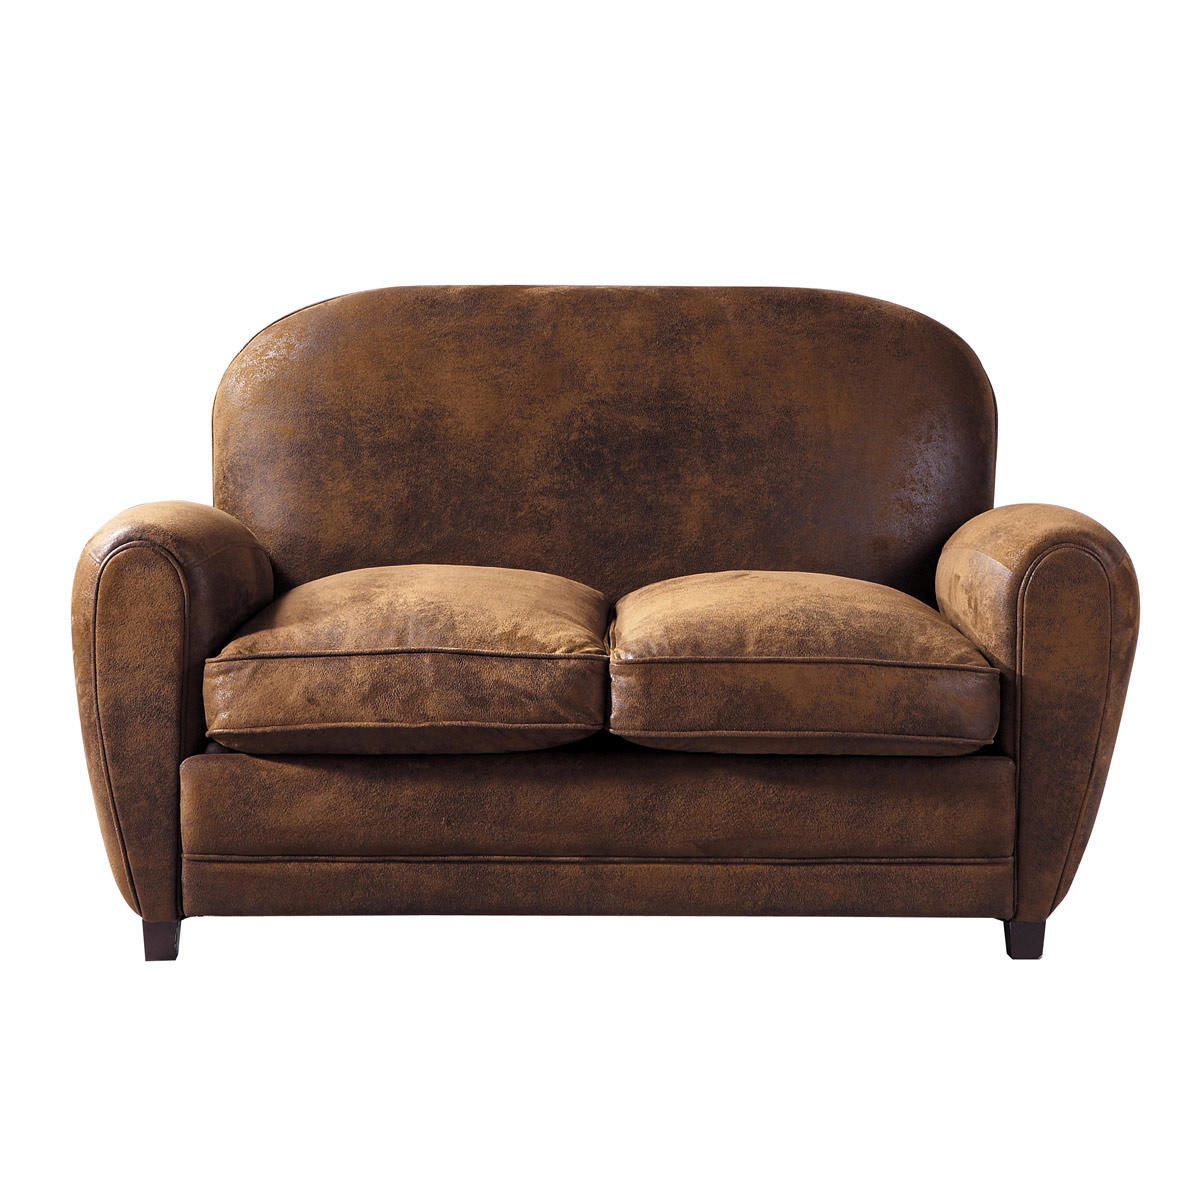 2 Seater Microsuede Club Sofa in Brown Arizona | Maisons du Monde